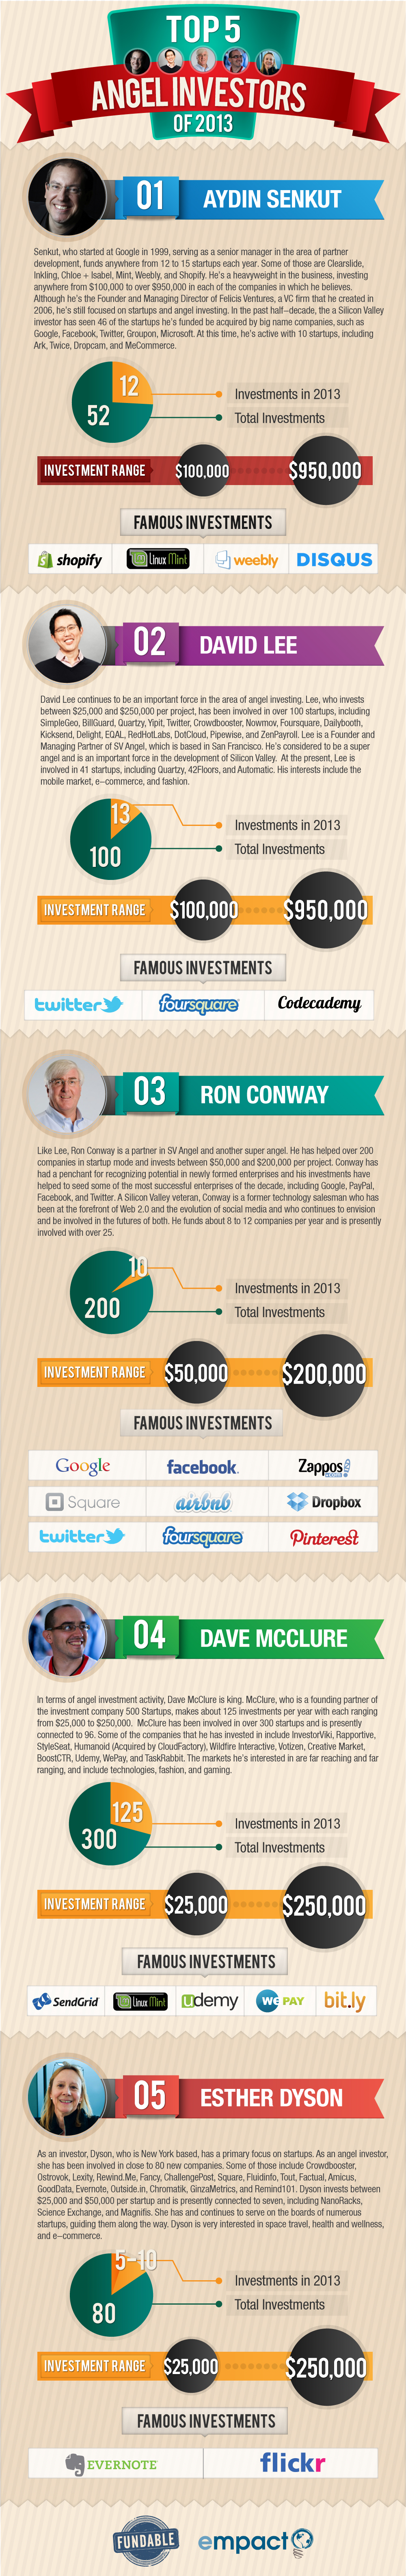 Top 5 Angel Investors of 2013